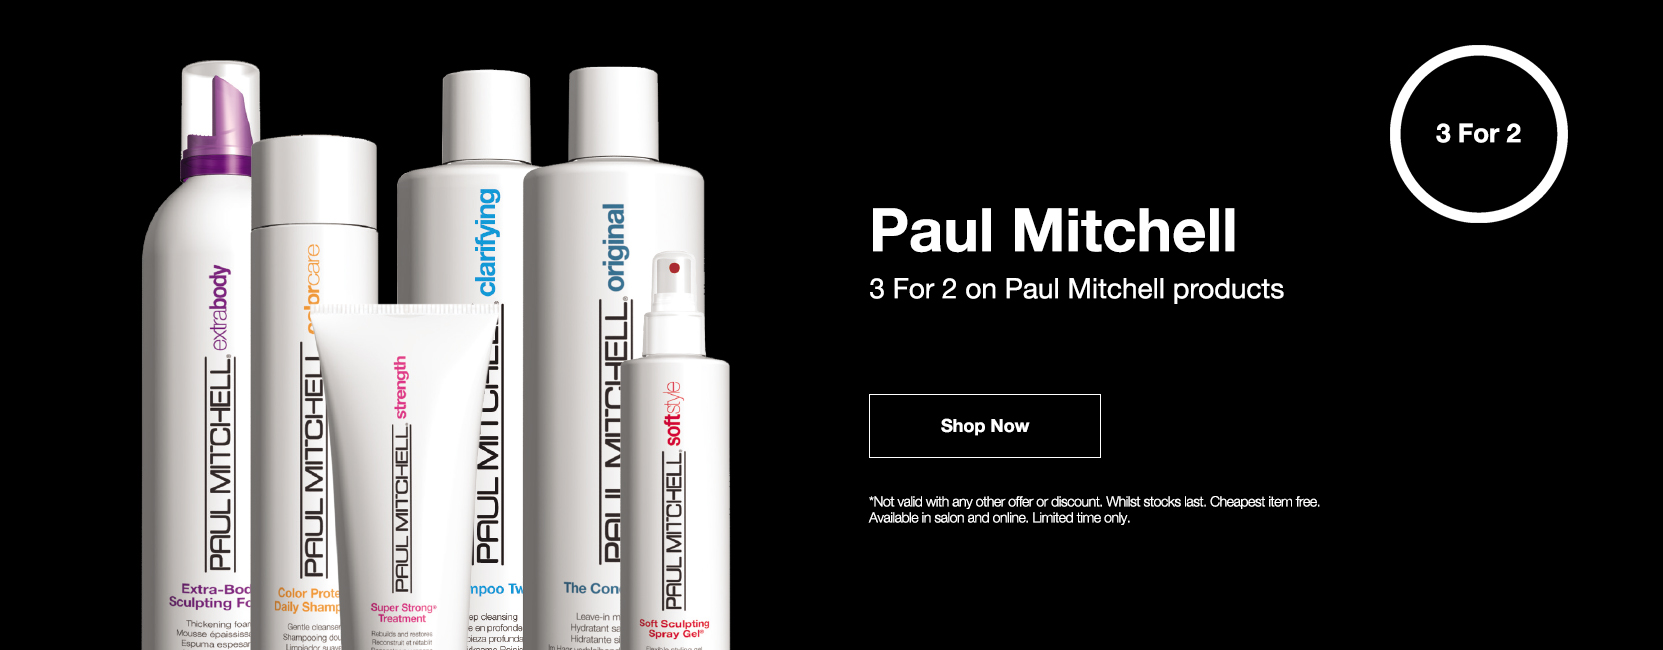 Paul Mitchell 3 for 2